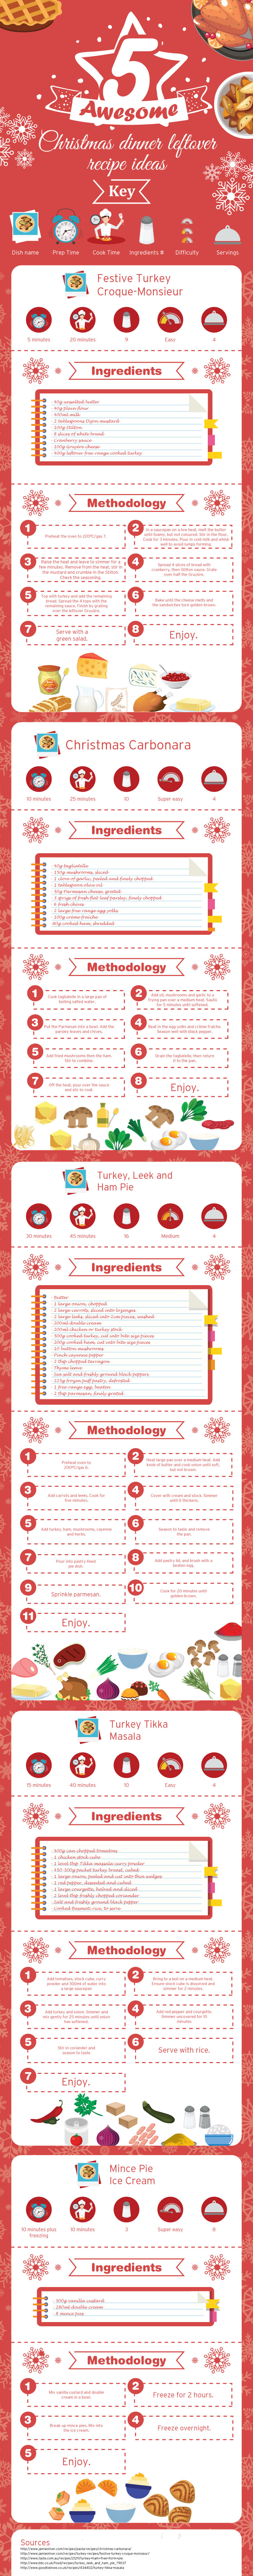 5 Awesome Christmas Dinner Leftover Recipe Ideas